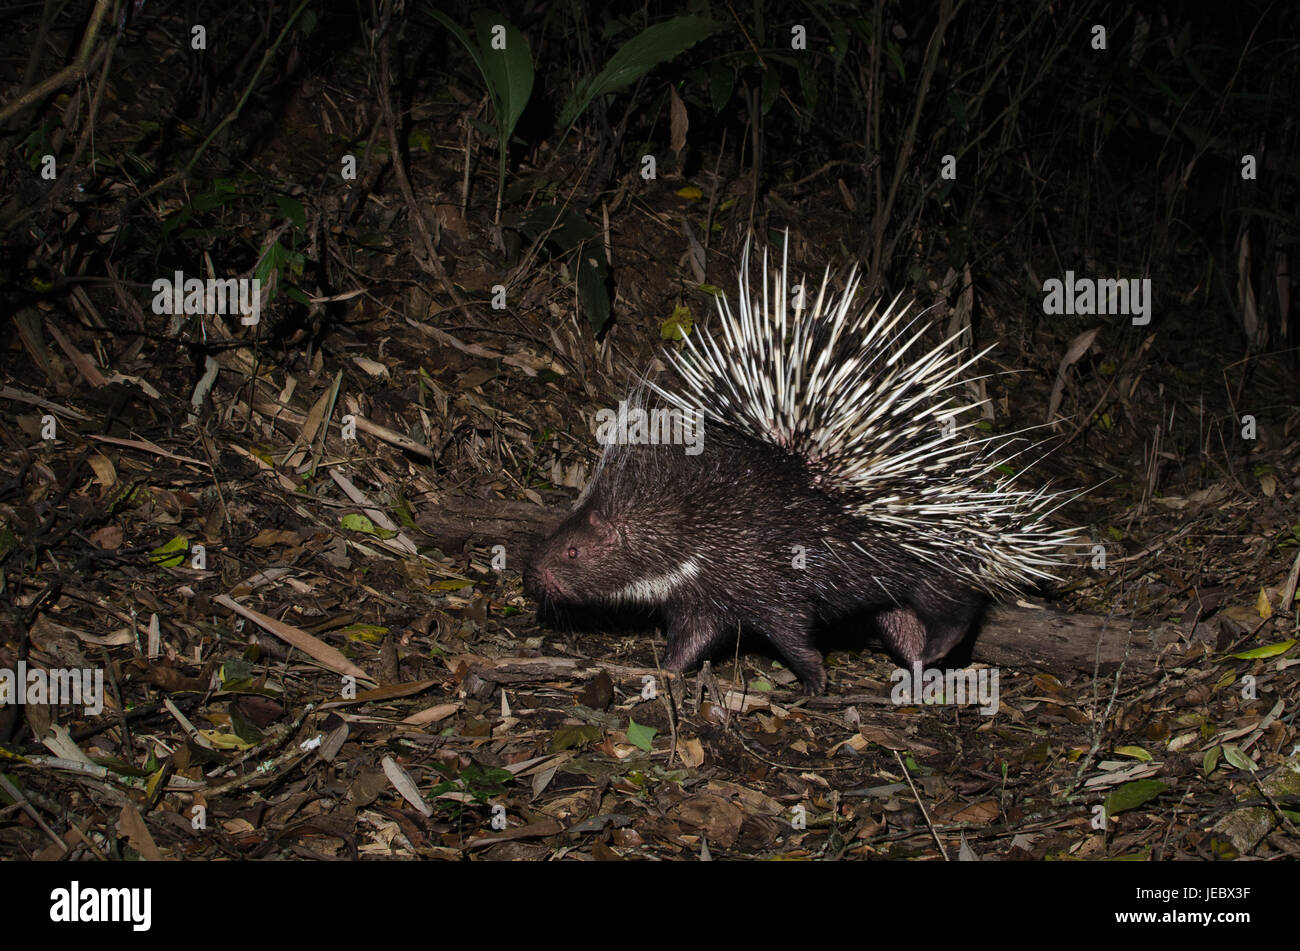 The Malayan porcupine or Himalayan porcupine (Hystrix brachyura) is a species of rodent in the family Hystricidae. - Stock Image